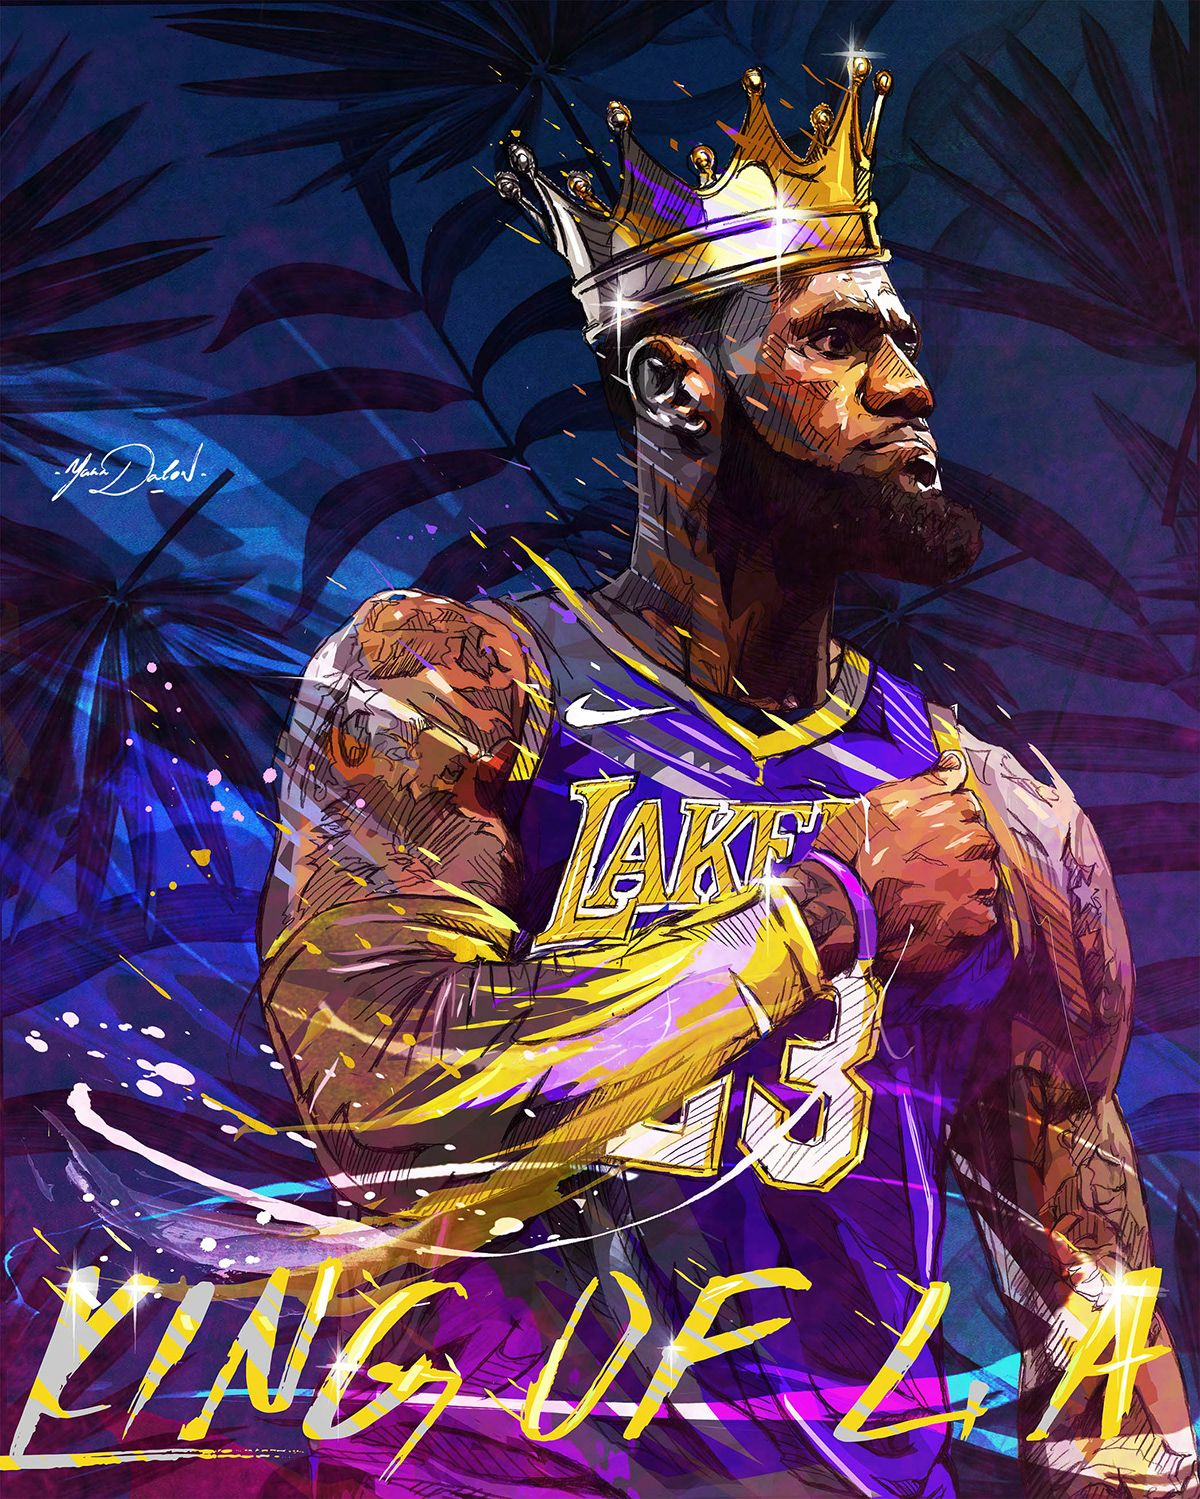 Lebron James Los Angeles Lakers. on Behance (With images